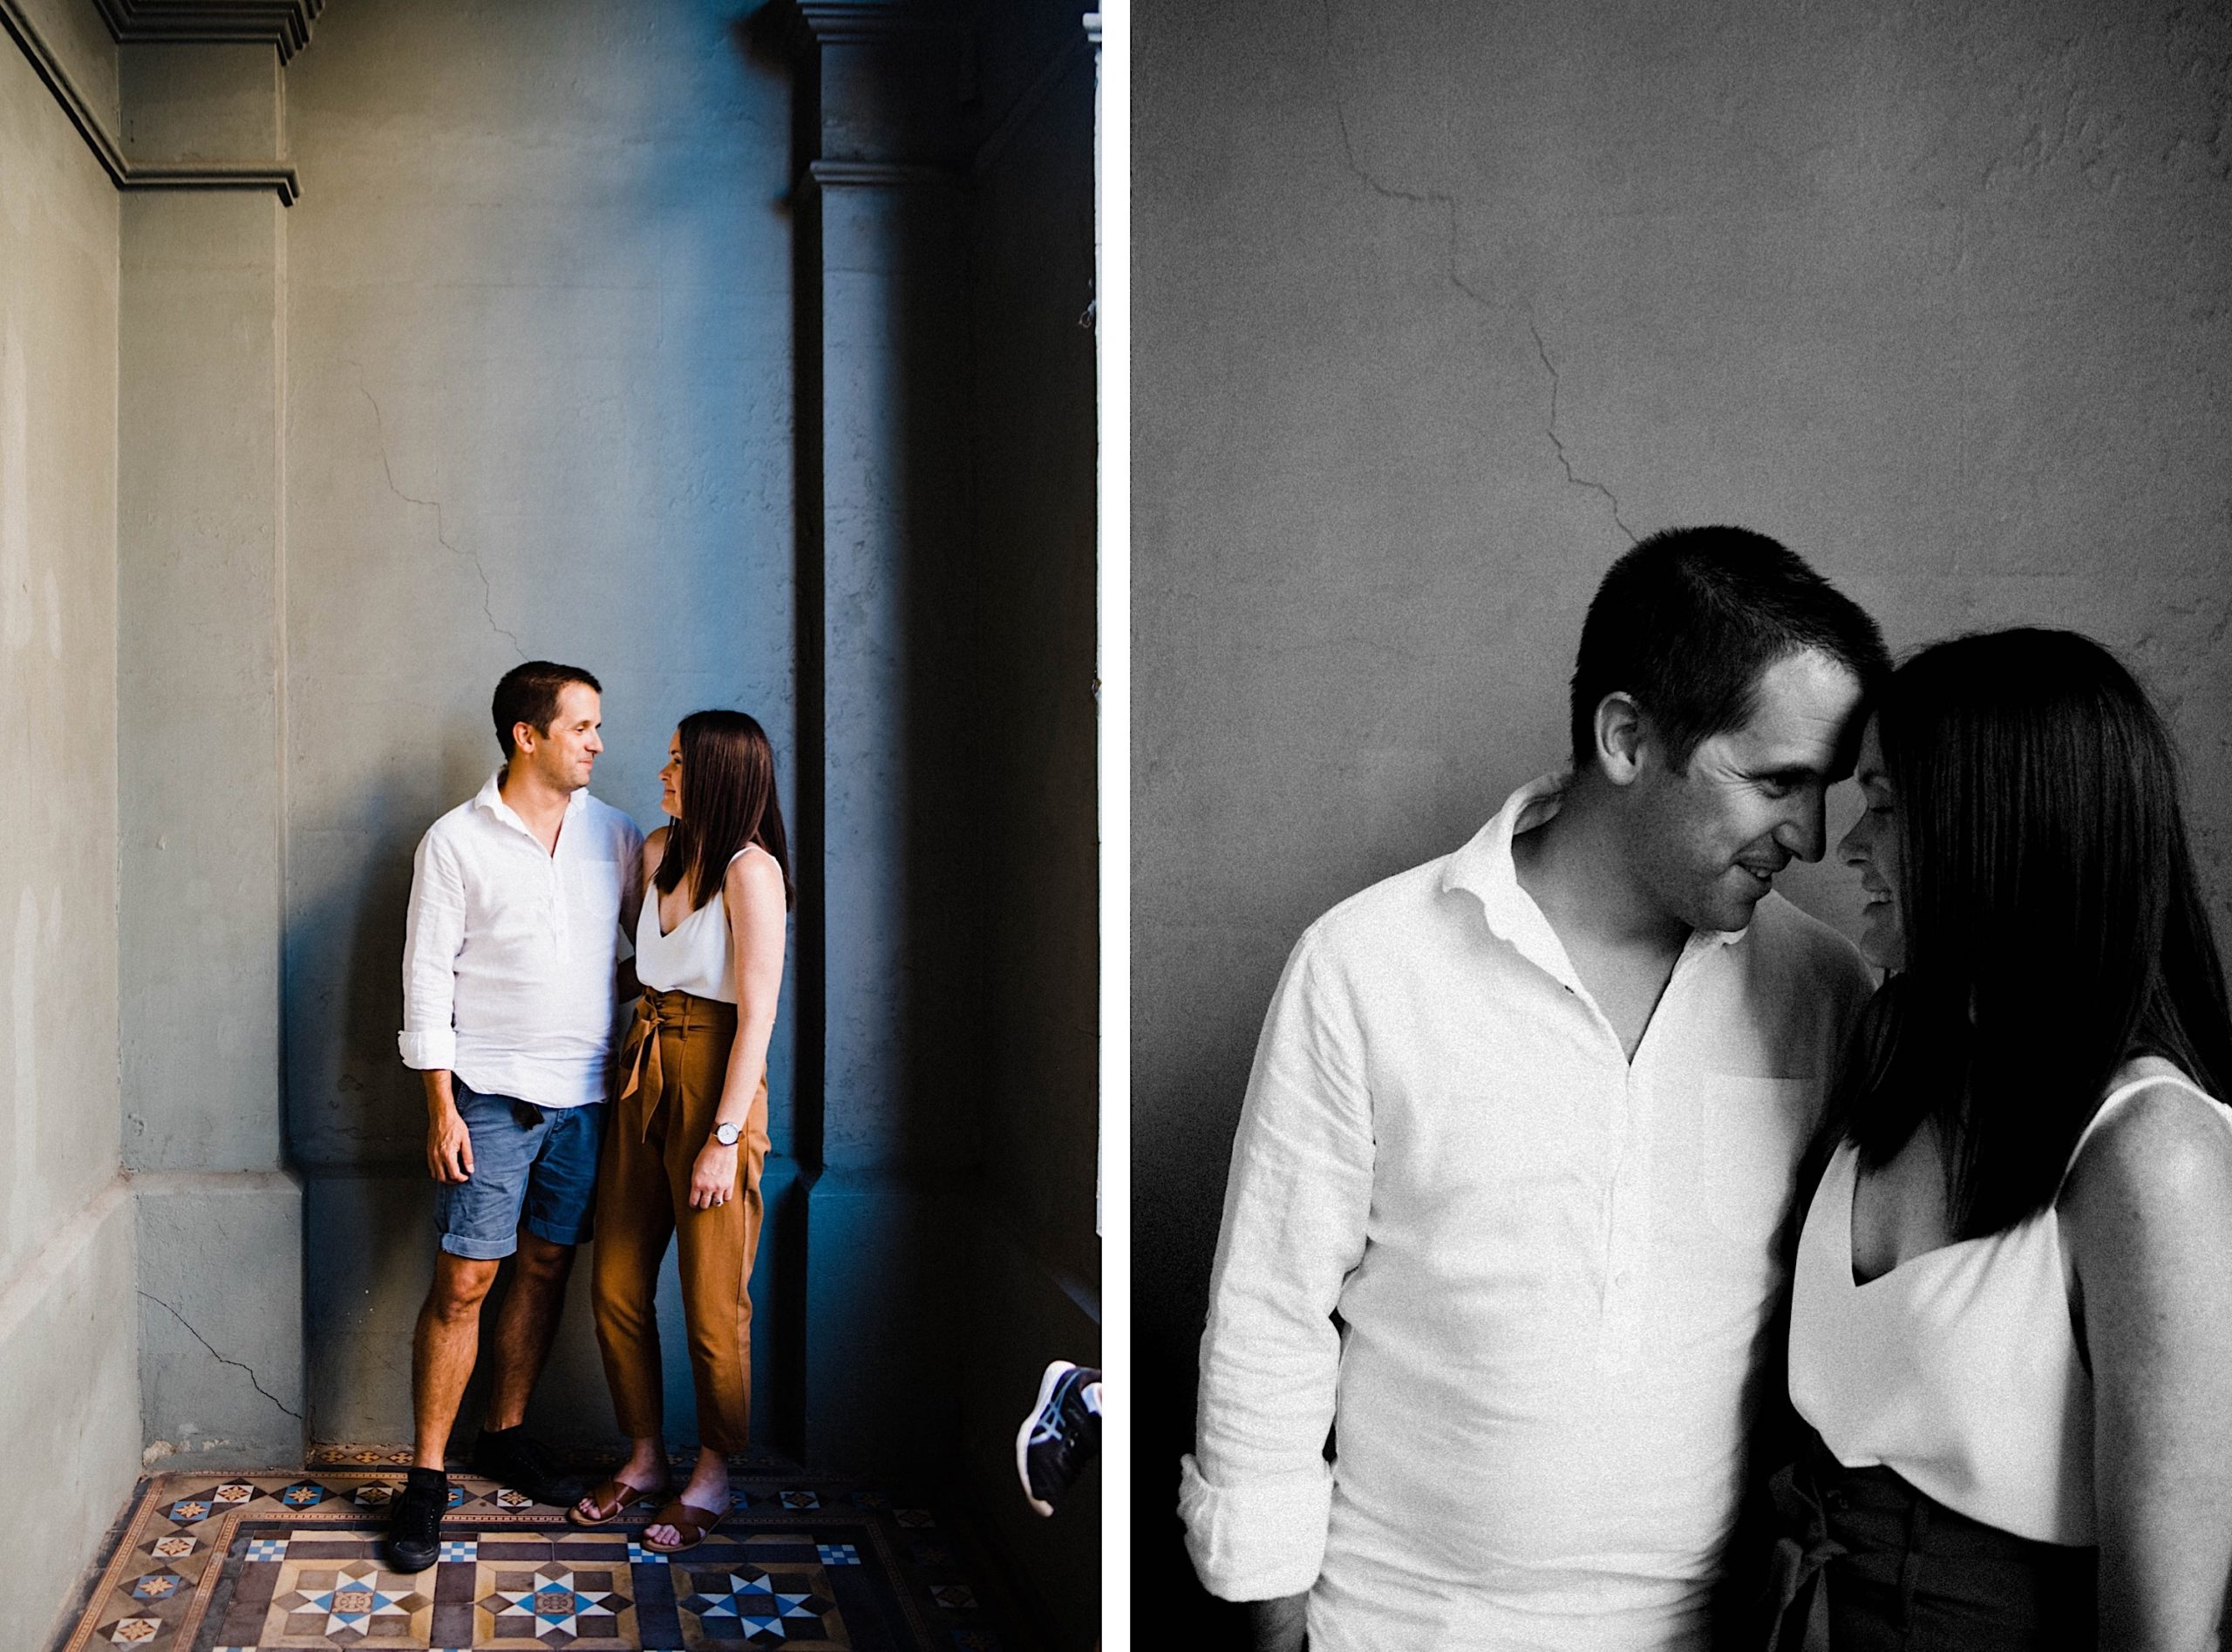 Two side-by-side images of a Mum and Dad taken in the porch of a Fremantle building during their candid family photo session. On the left, a wide shot with one of their kids shoes just entering in the frame on the left, on the right, a black & white close up photo of the couple.